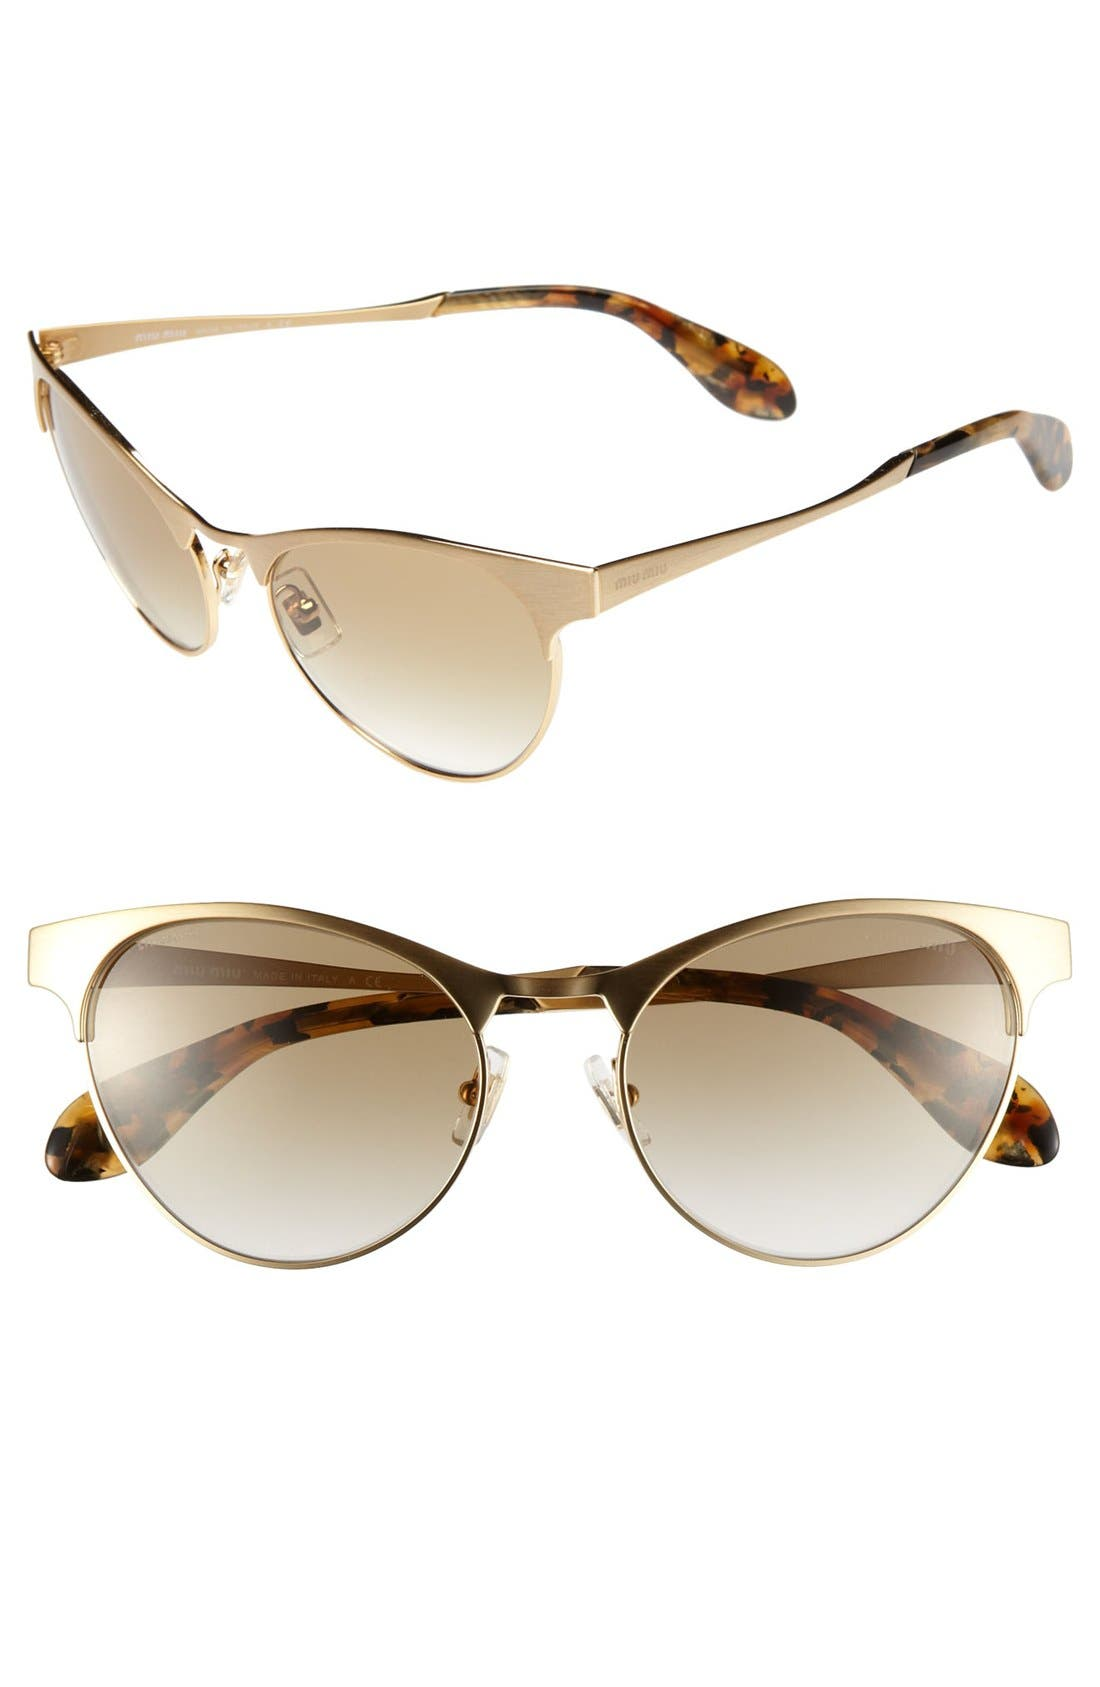 Main Image - Miu Miu Cat's Eye Sunglasses